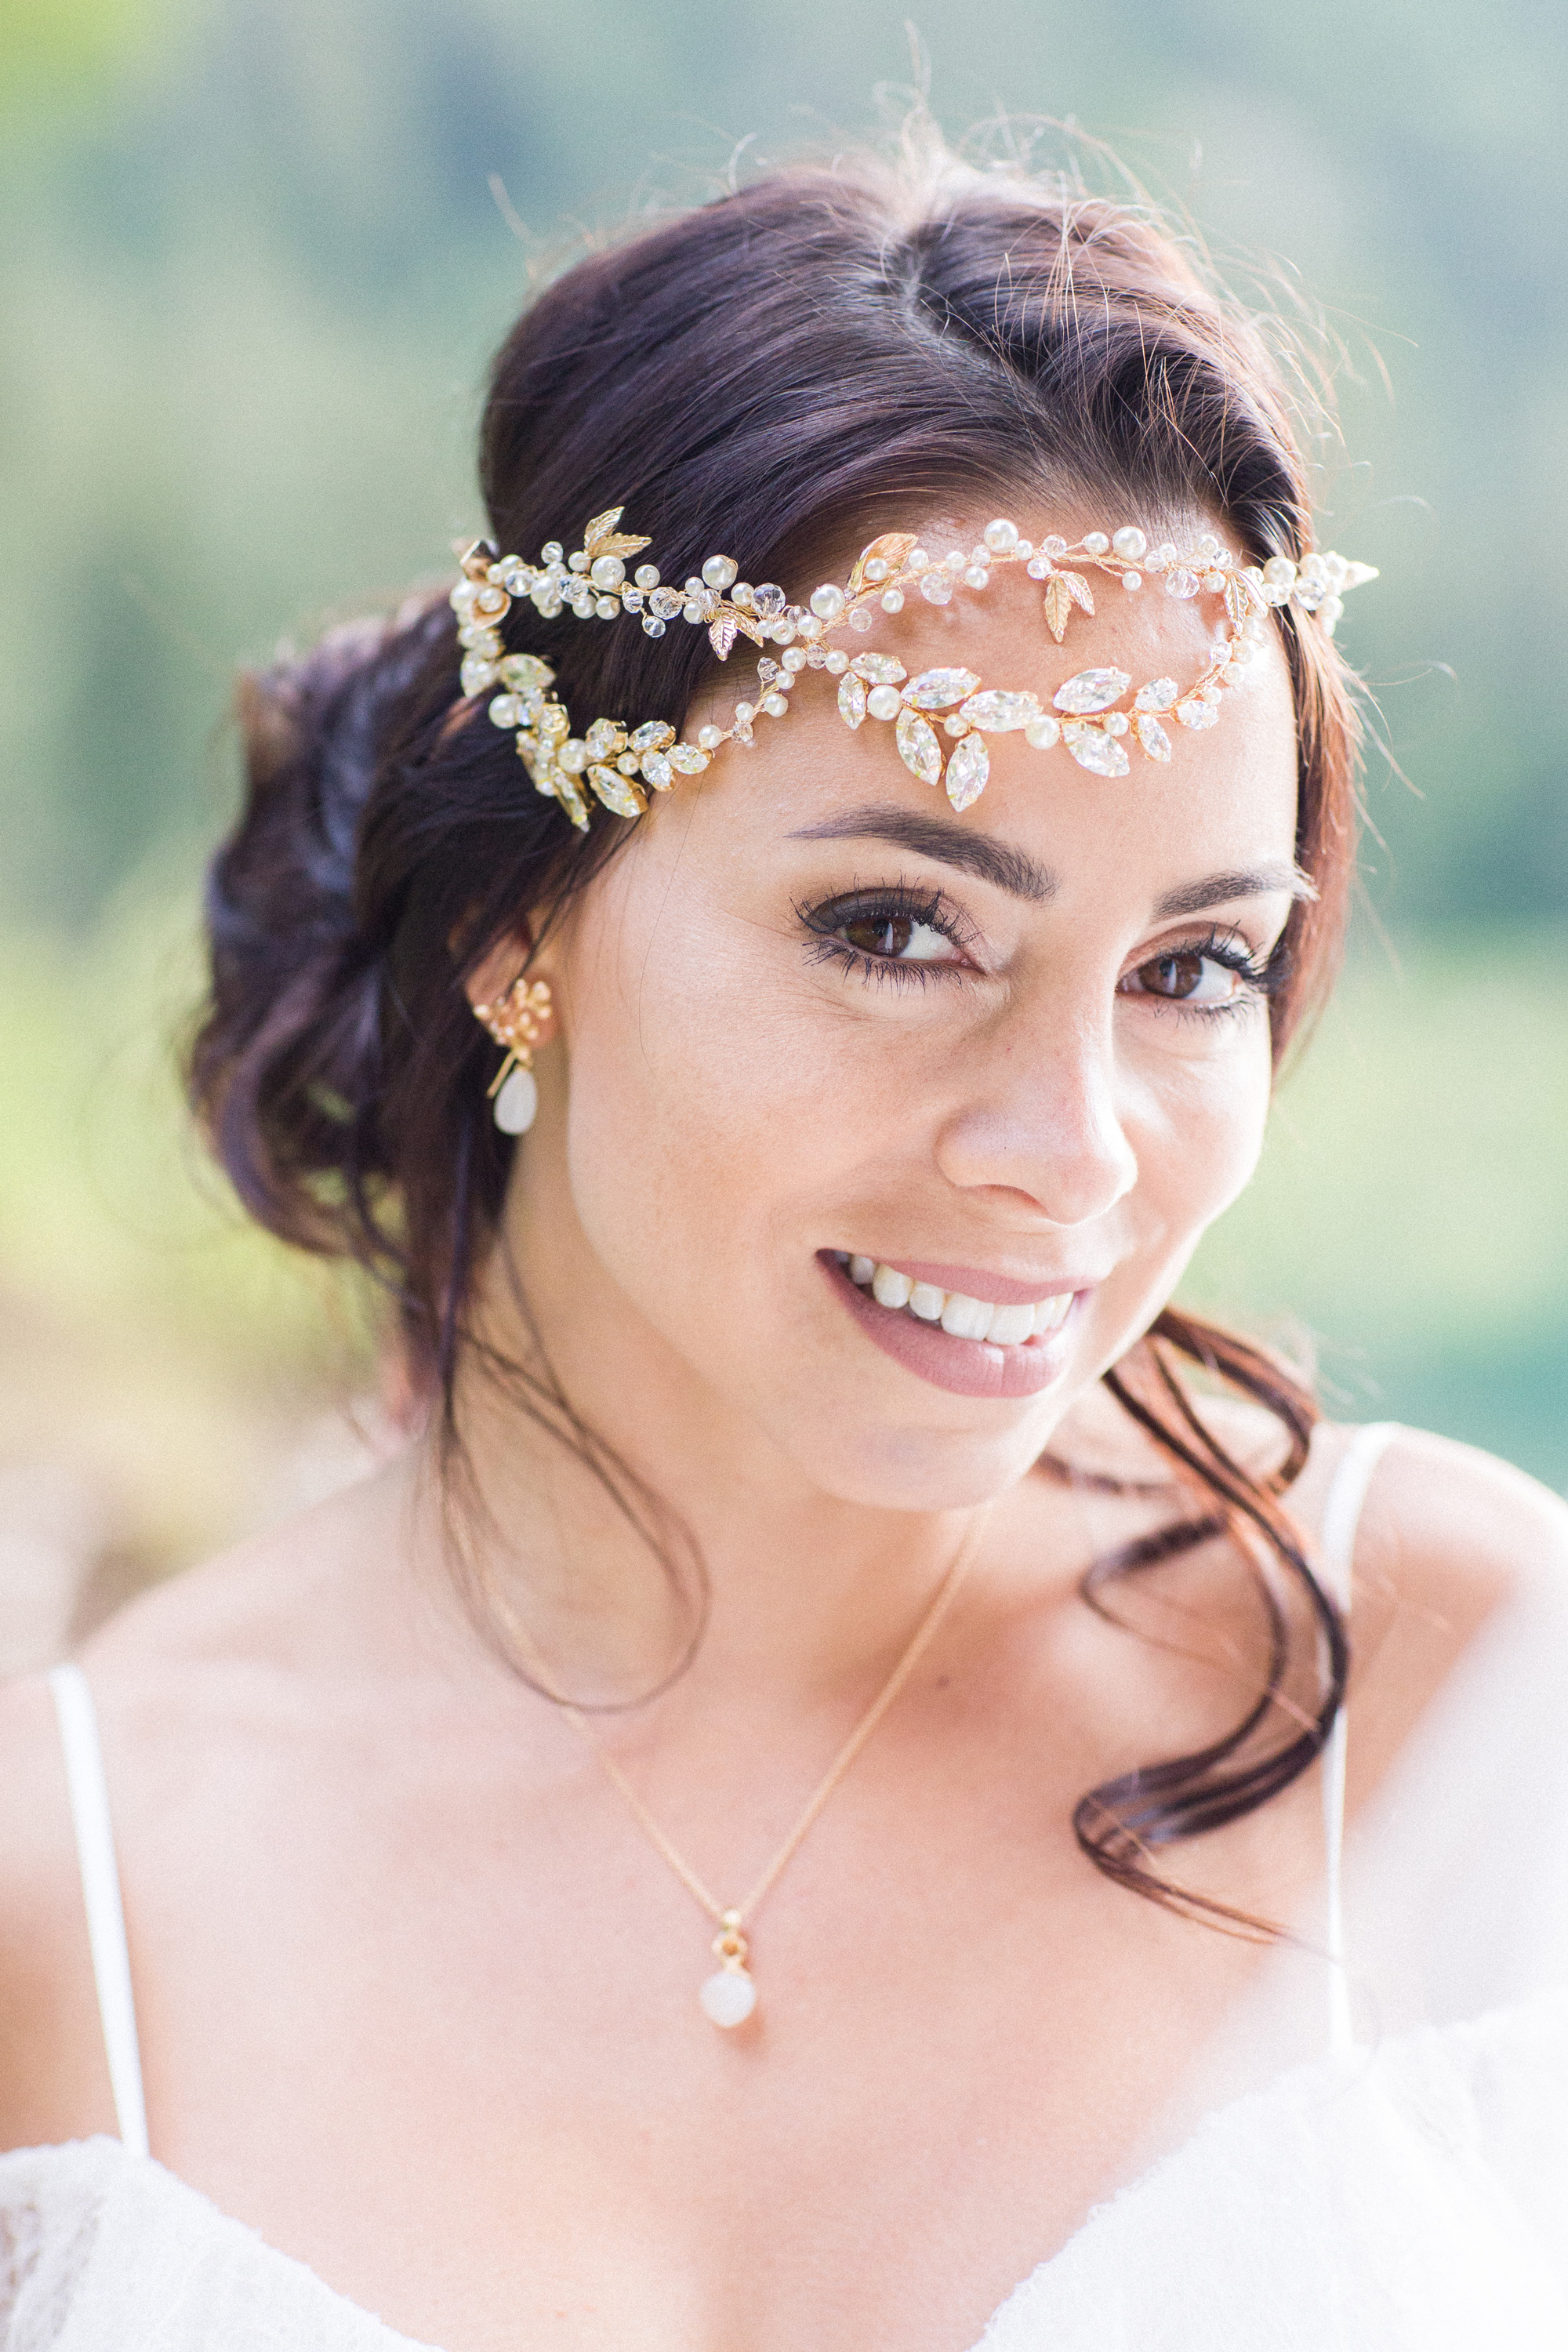 Find your perfect Wedding Hair Piece - Handmade in SwitzerlandUnique DesignPossibility to Rush OrdersFree Shipping WorldwideCustomisable OrdersFast response on your questions